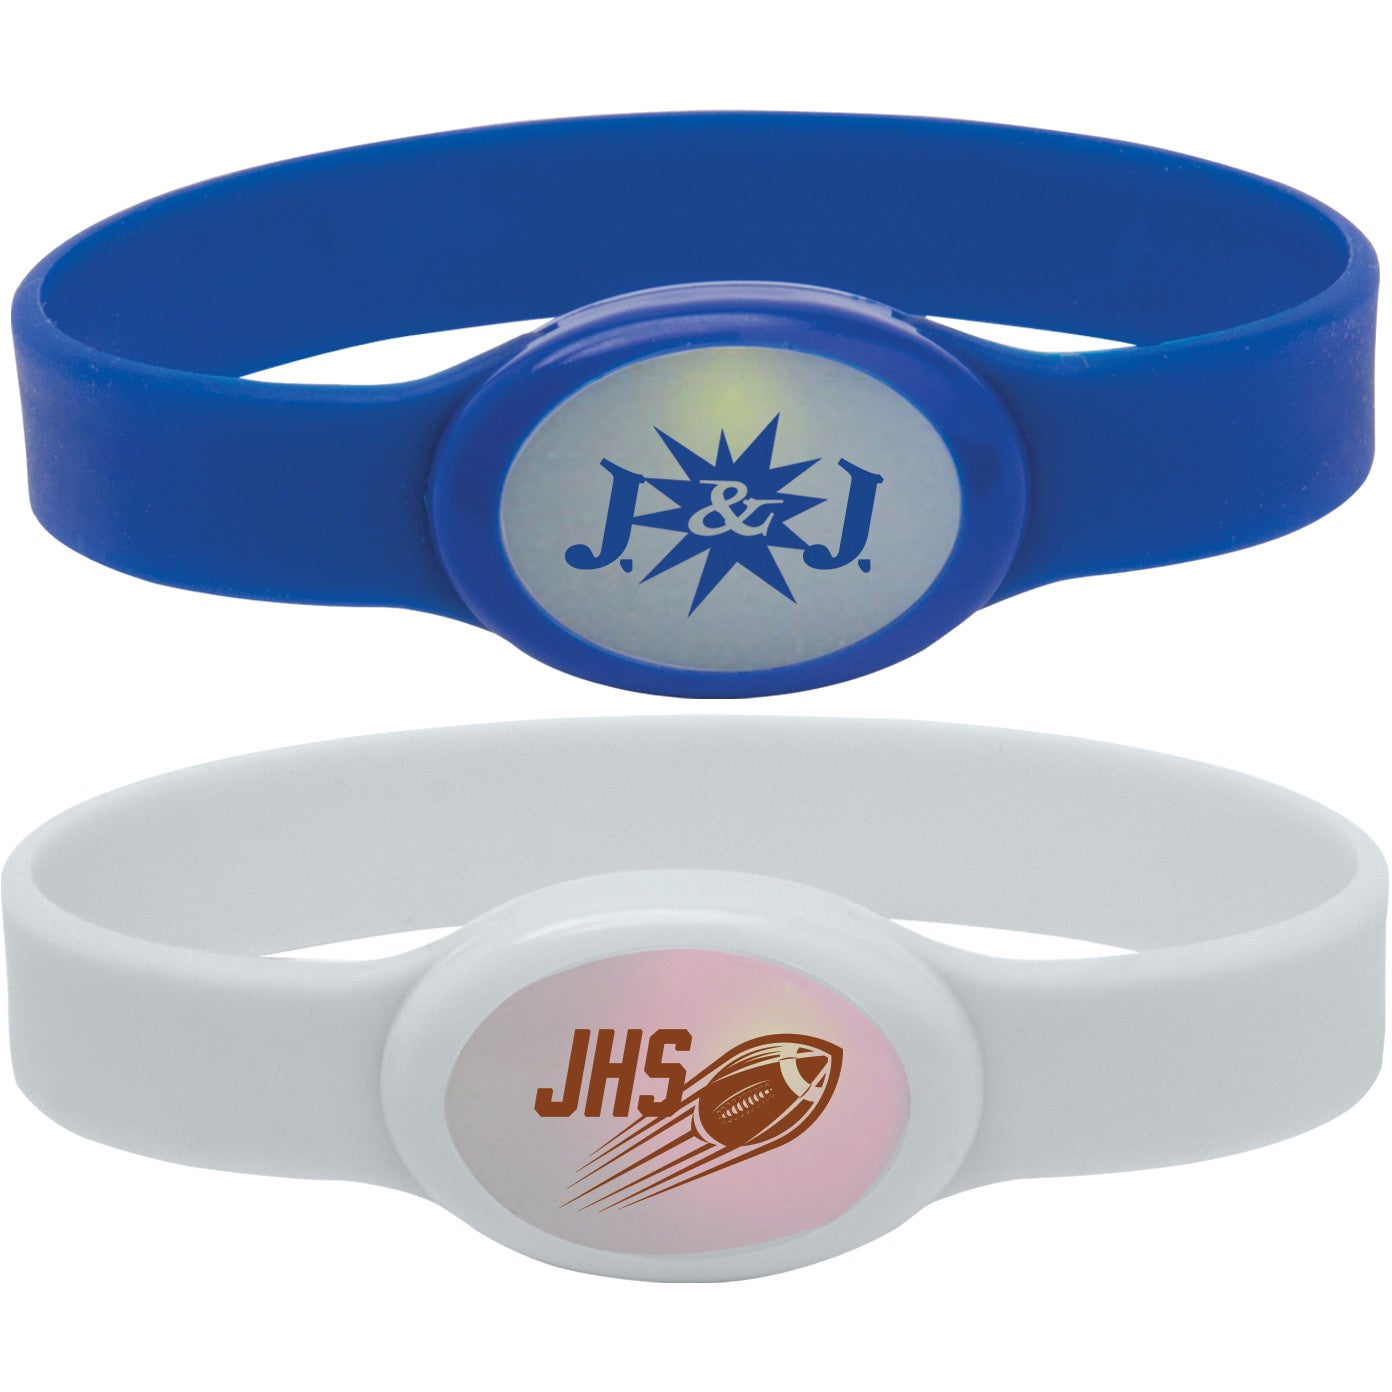 Light Up Silicone Bracelet With Your Slogan